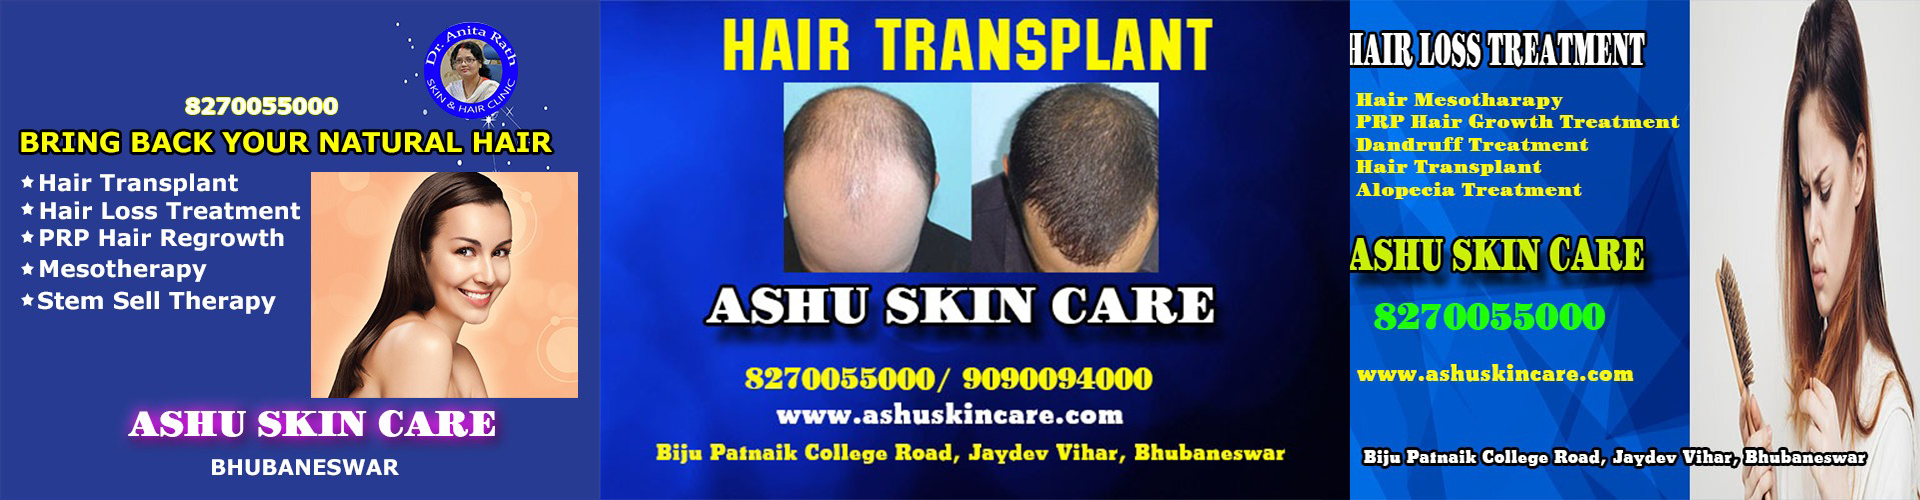 Best Hair transplant center in bhubaneswar